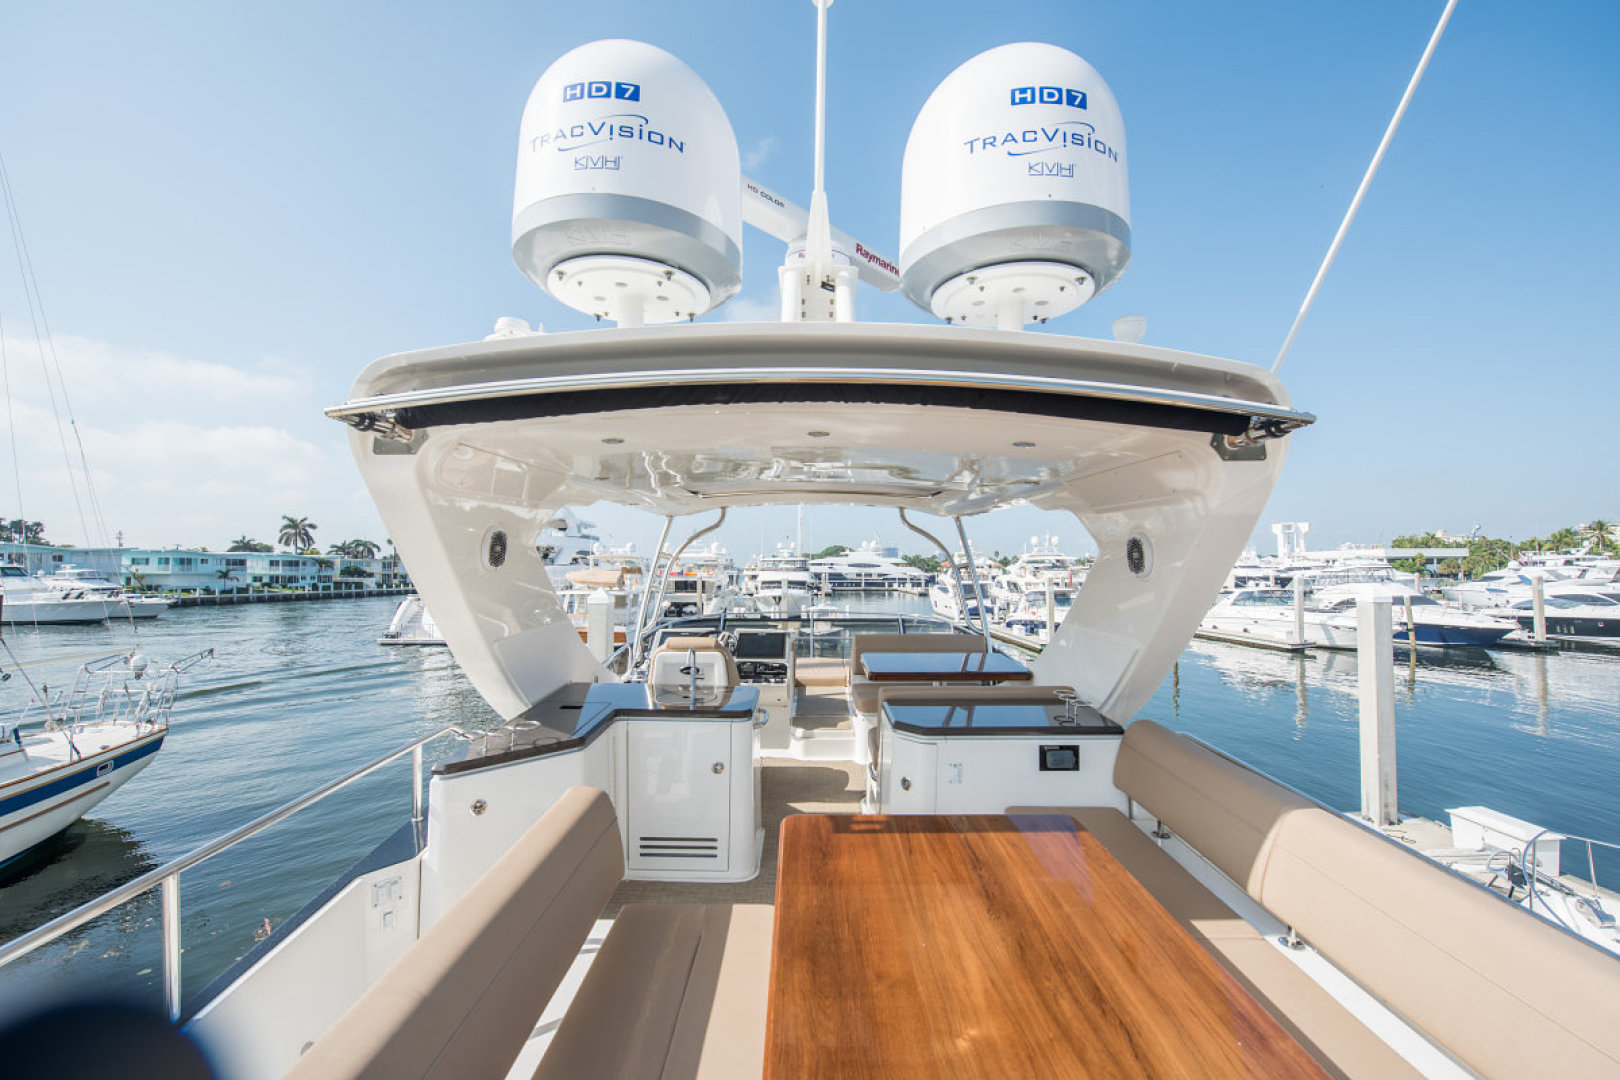 Sea Ray-L590 Fly 2016-2016 Sea Ray L590 Fly Ft. Lauderdale-Florida-United States-1284604 | Thumbnail